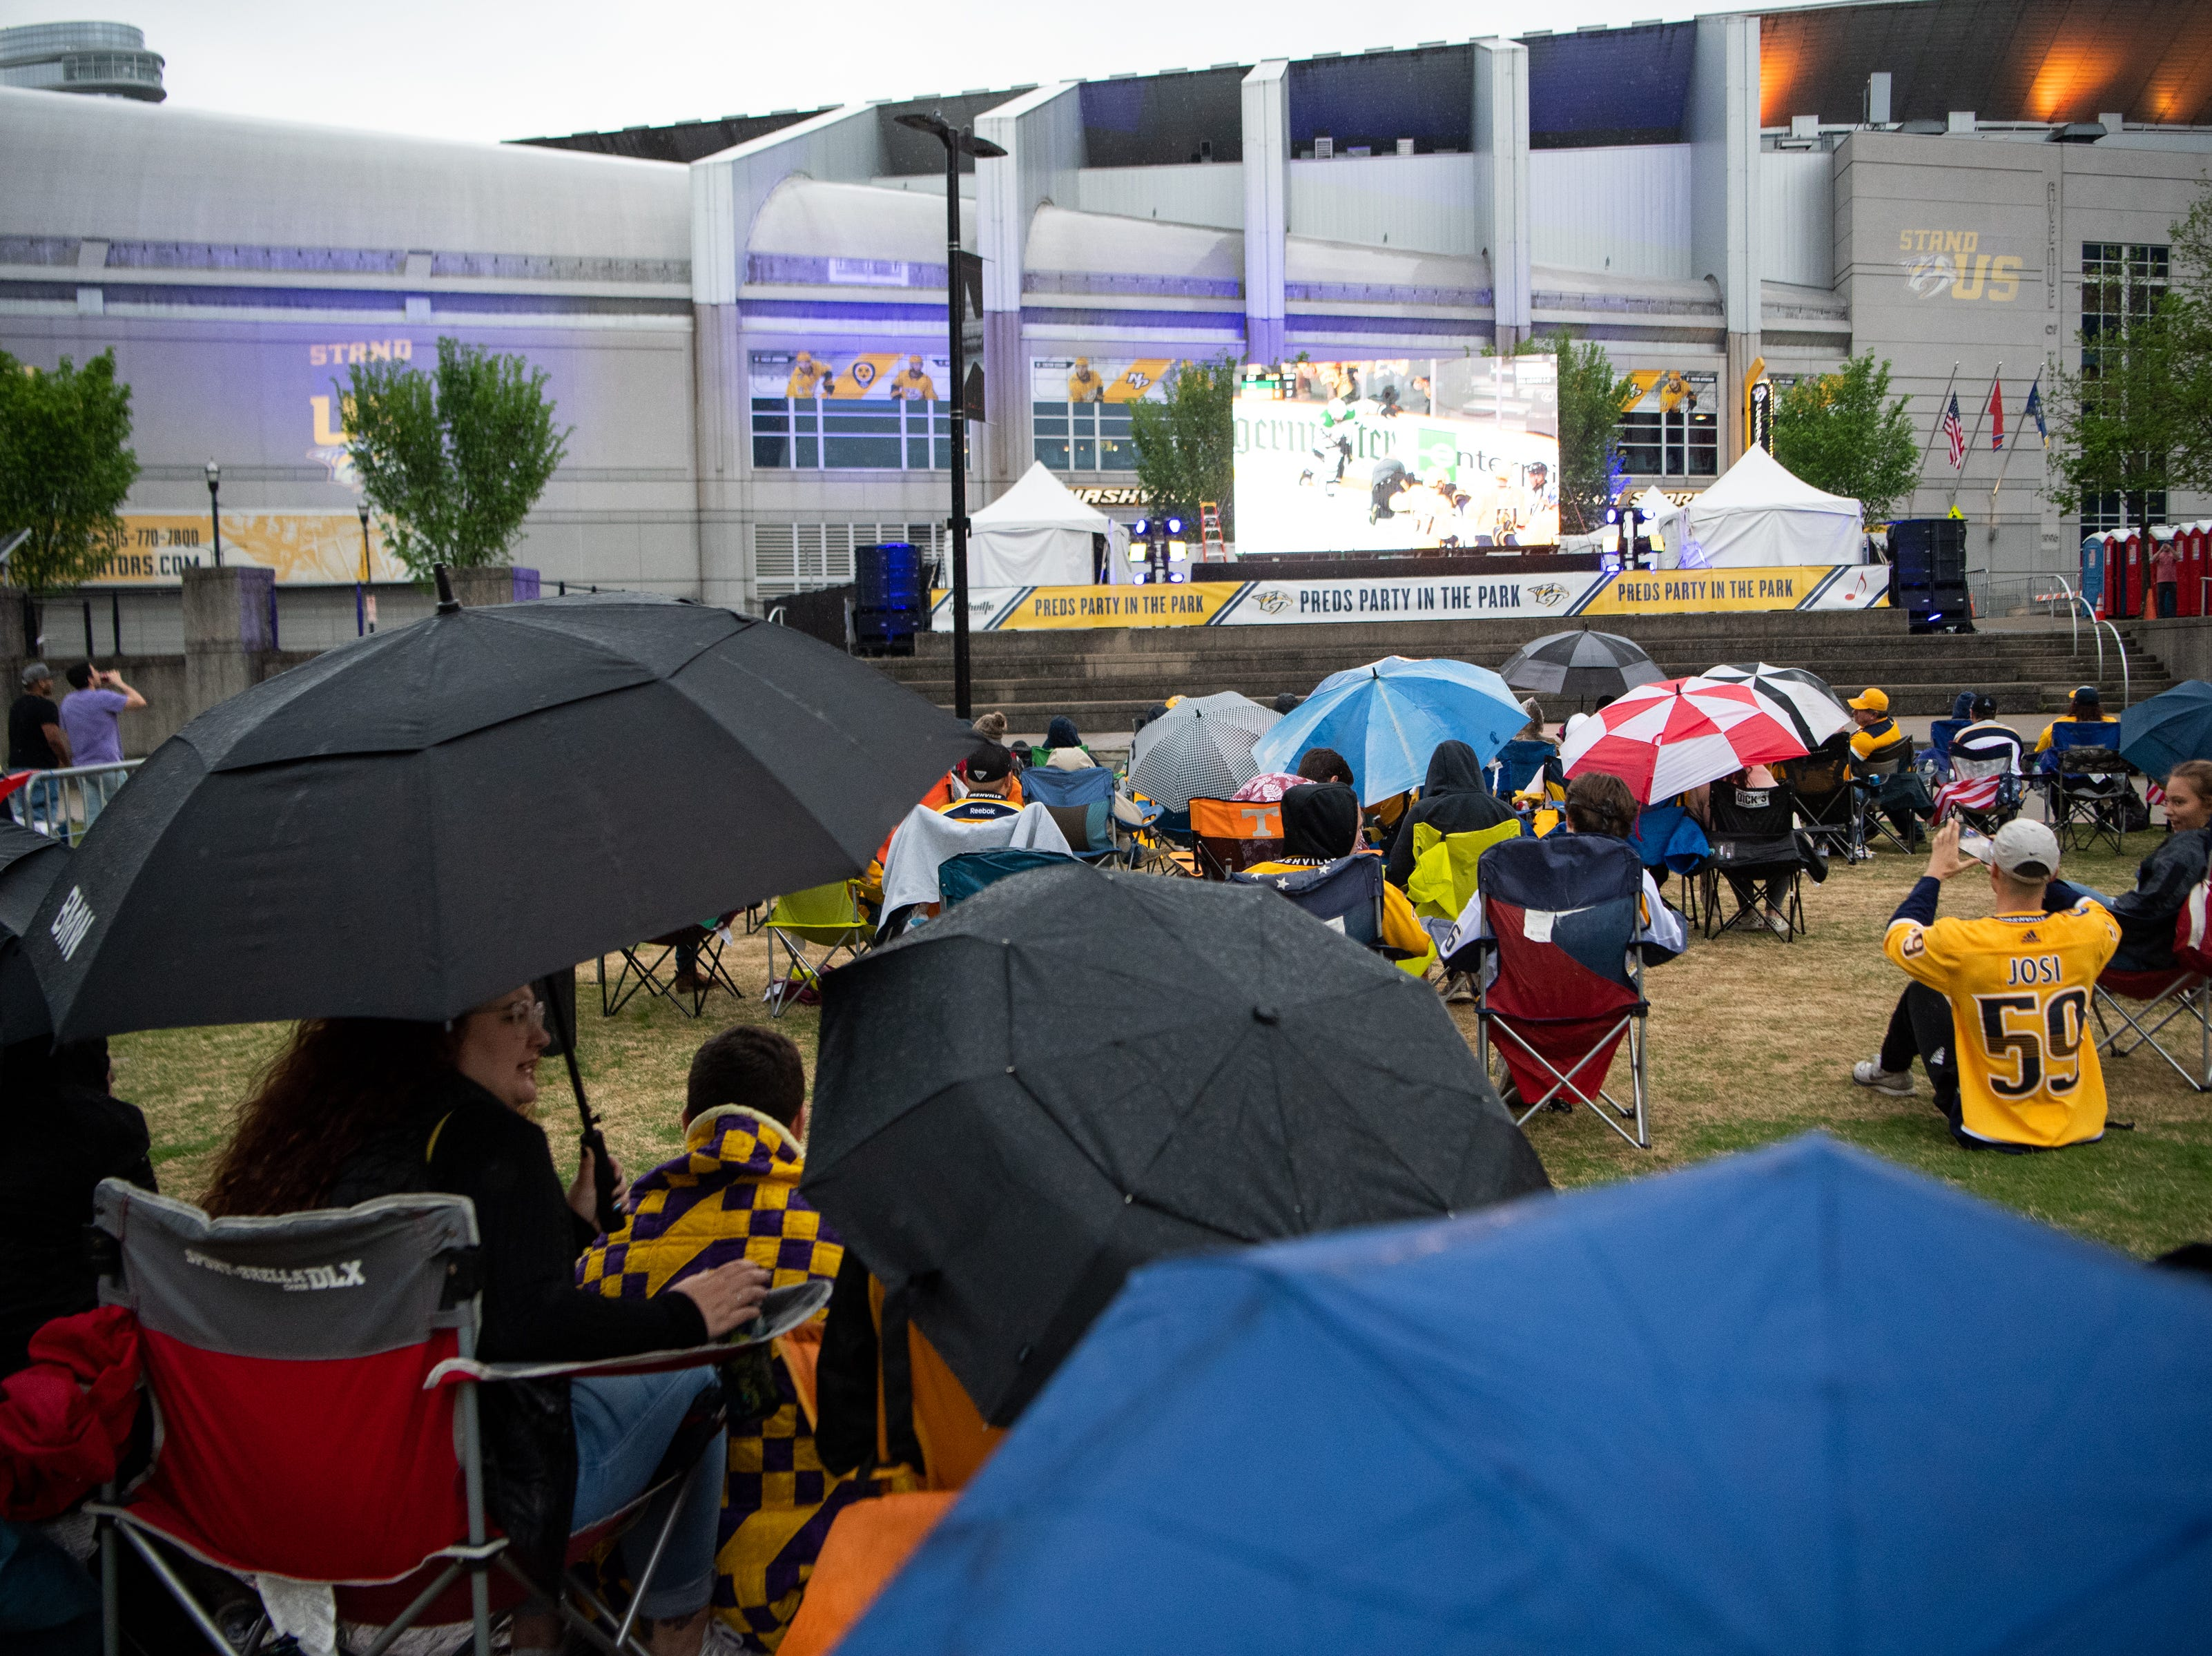 Fans try to stay warm and dry during the second period of the Nashville Predators game against the Dallas Stars at Preds Party in the Park at Walk of Fame Park Saturday, April 13, 2019, in Nashville, Tenn.